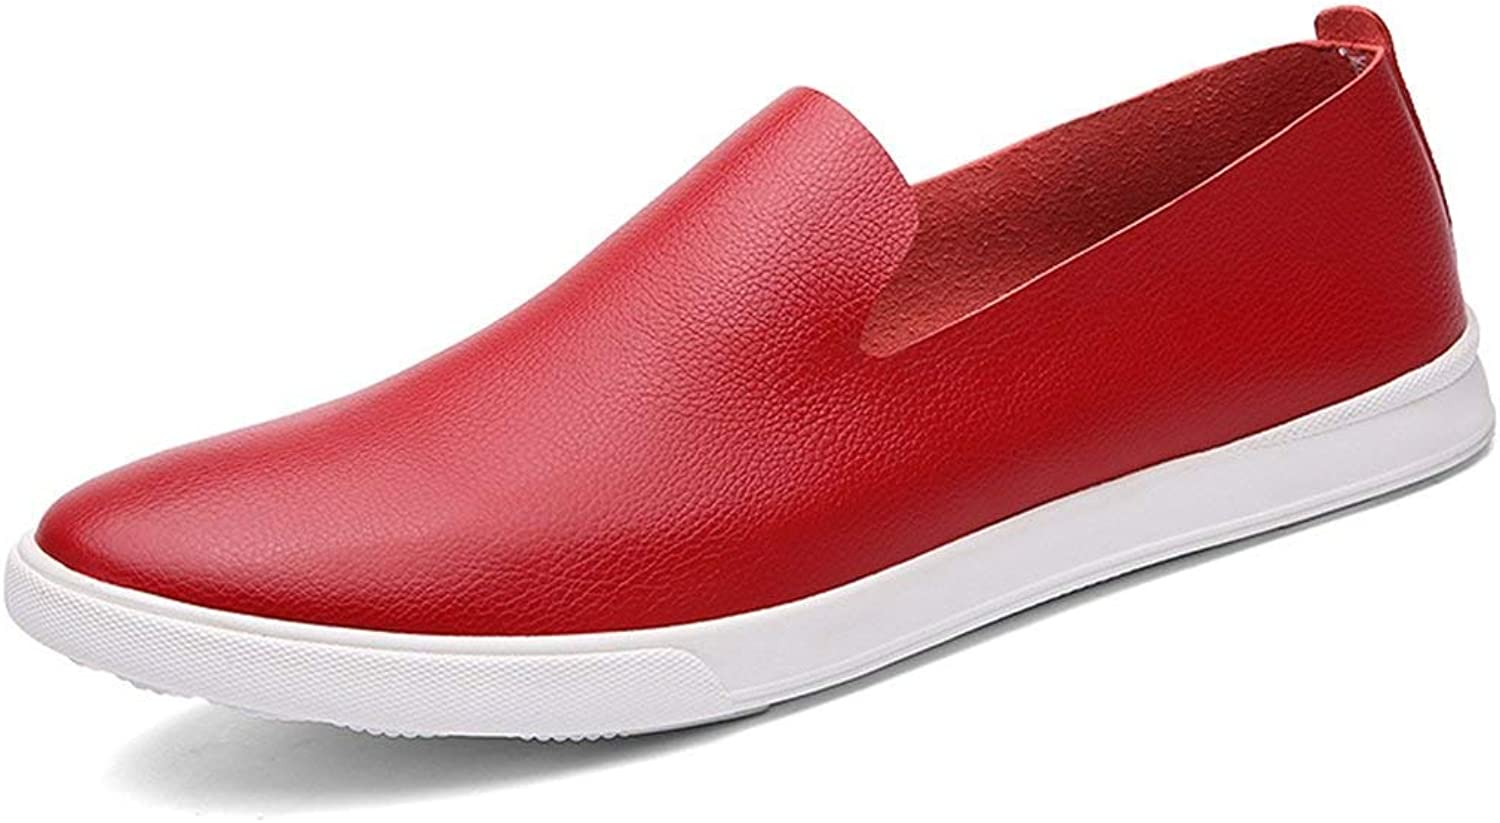 ZHRUI Boy's Men's Rubber Sole Red Spring shoes Dress Loafers UK 8 (color   -, Size   -)